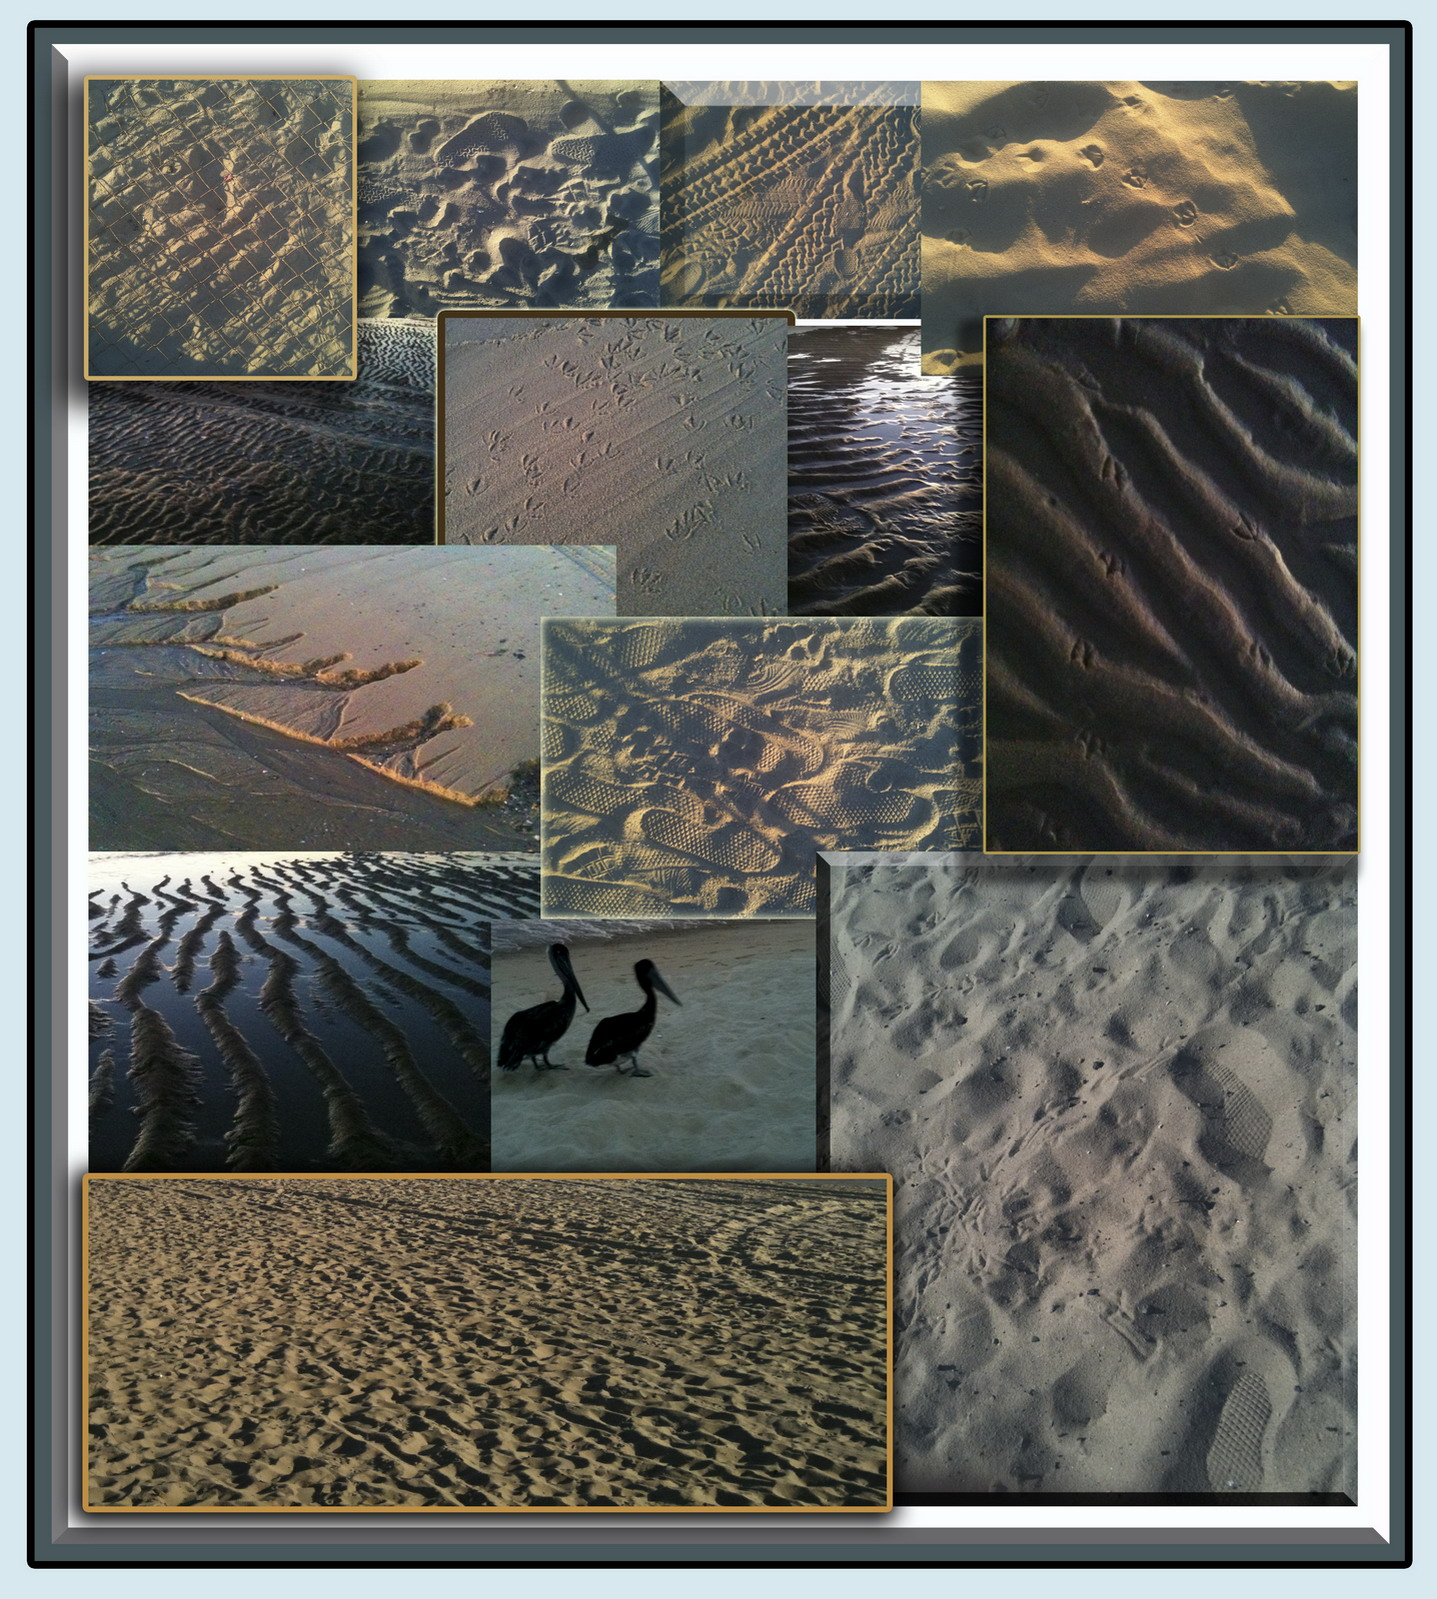 Click image for larger version  Name:Sands of Time 2.jpg Views:81 Size:740.6 KB ID:94563